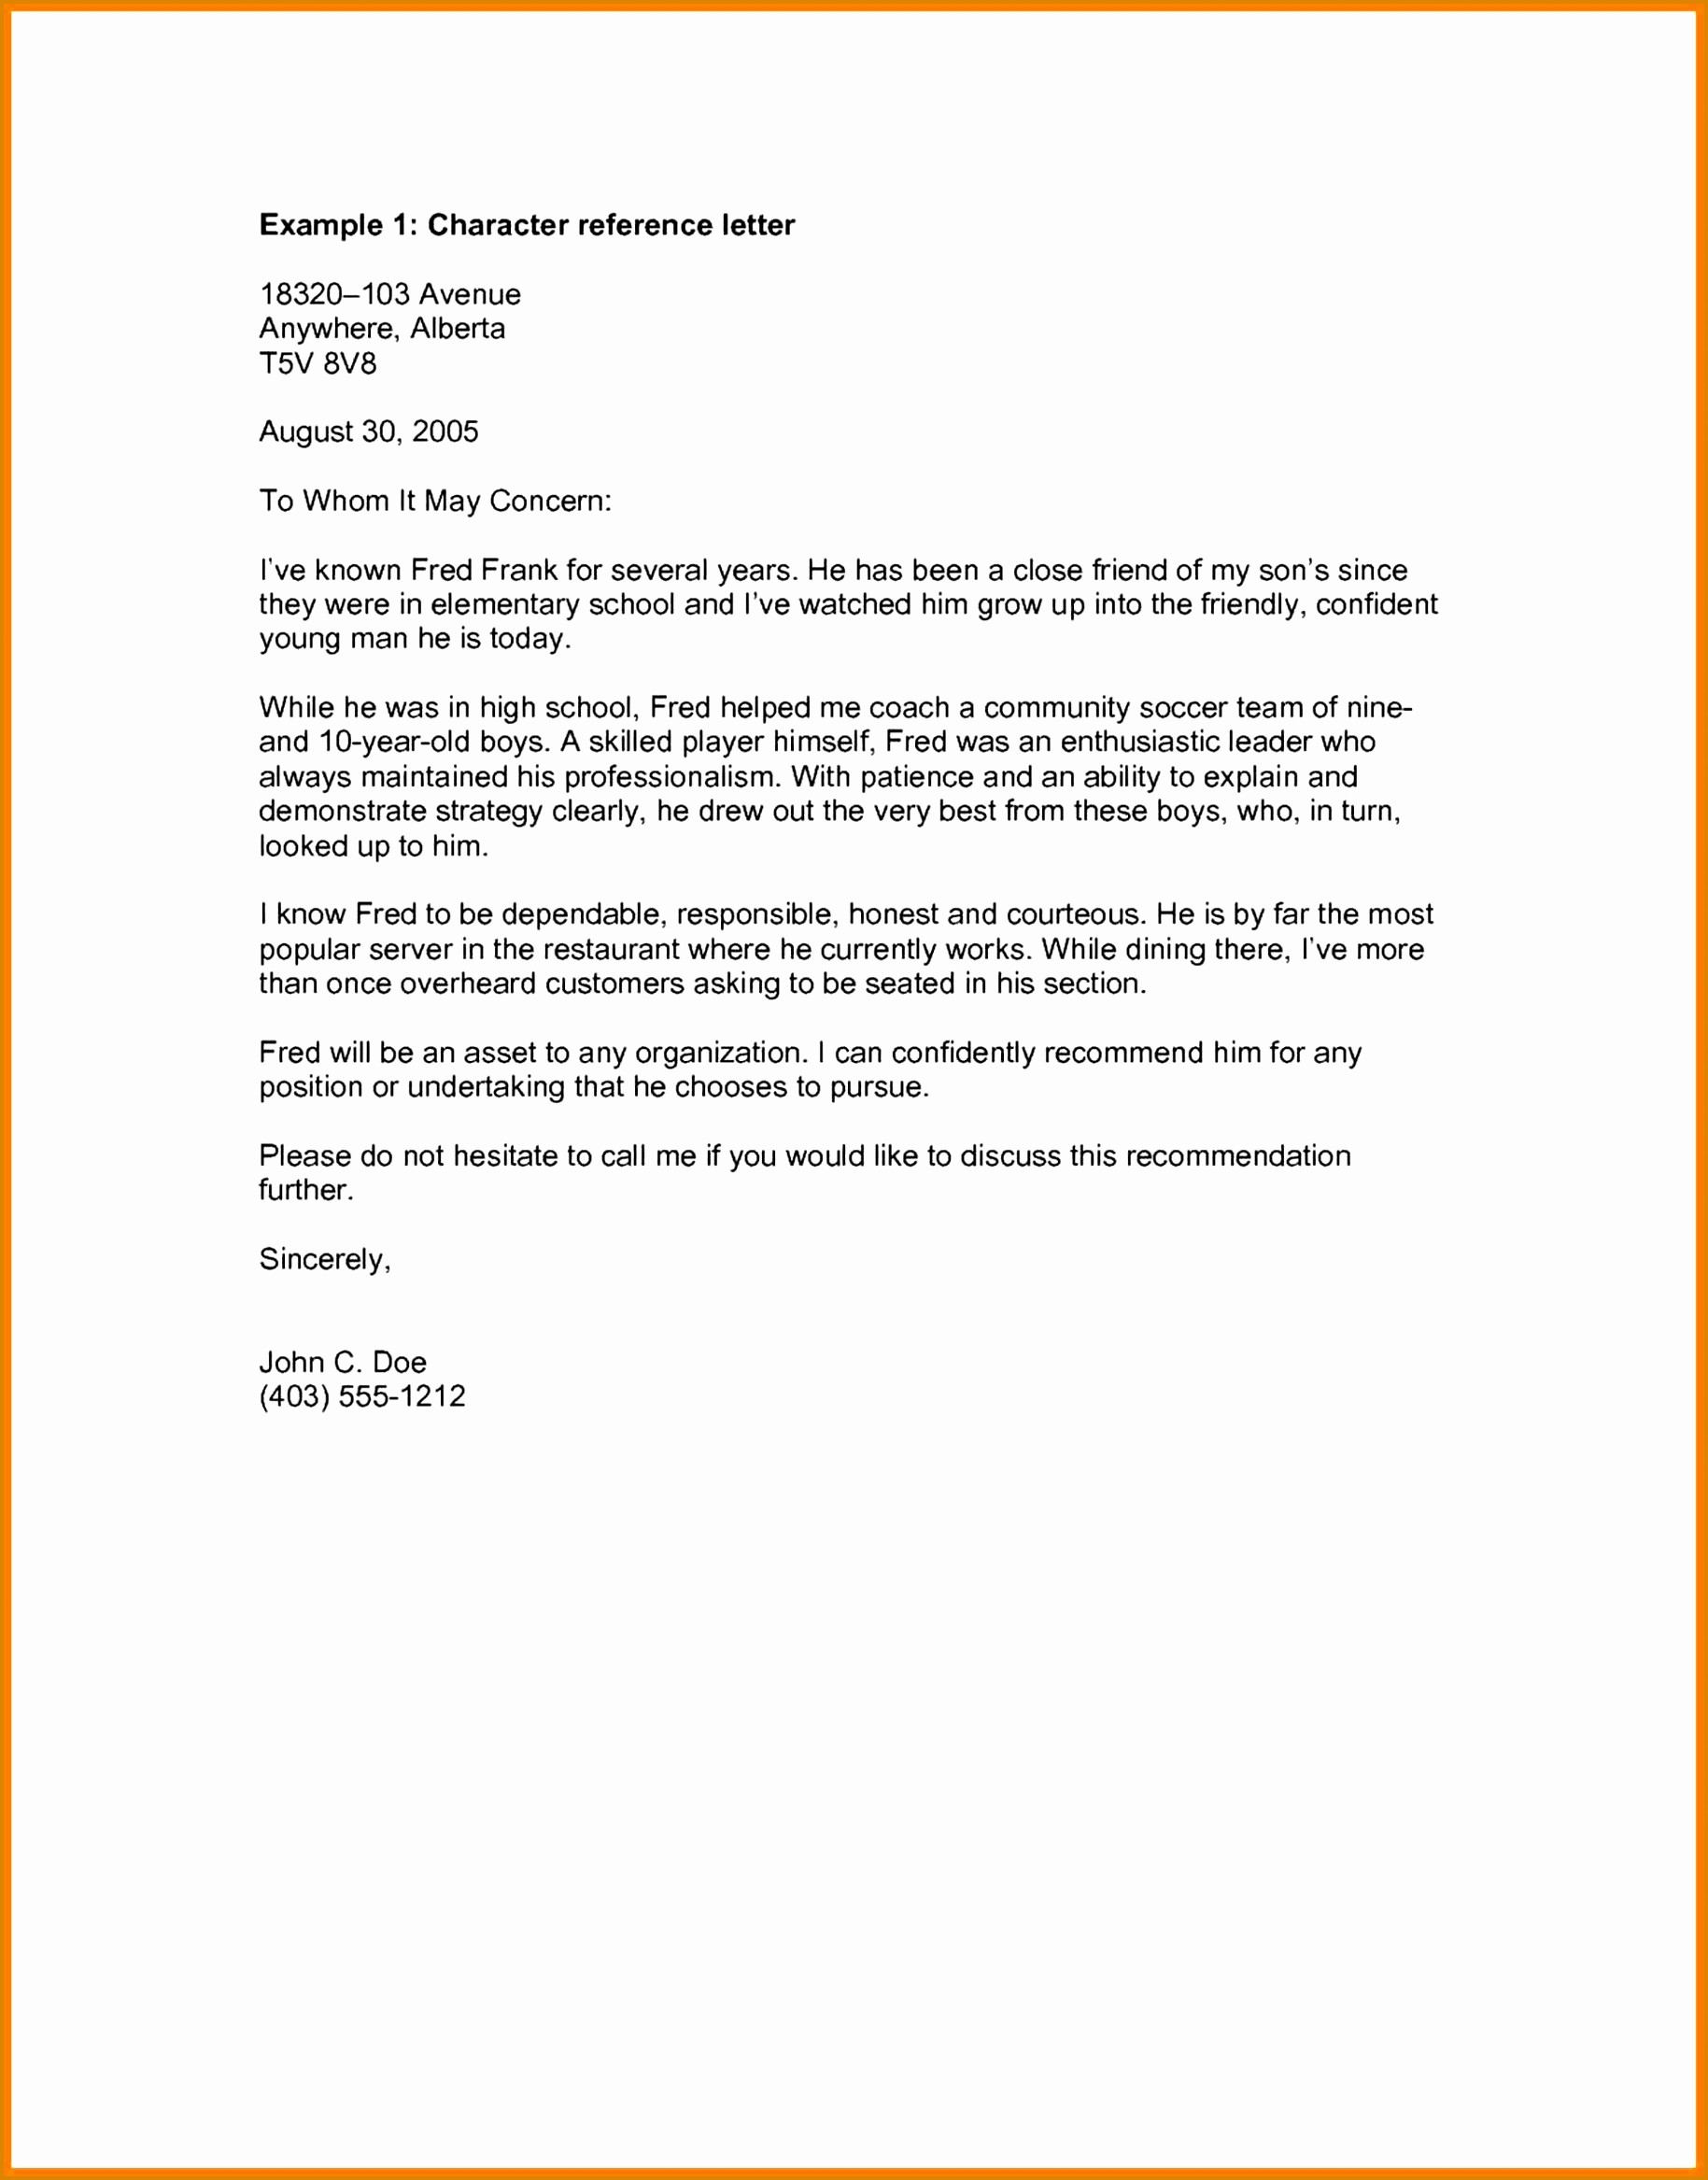 letter of engagement template contractor Collection-Engagement Letter Template Uk Best Undertaking Letter Format Construction New Breach Contract New Undertaking Letter Format Construction Inspiration 8 1-a